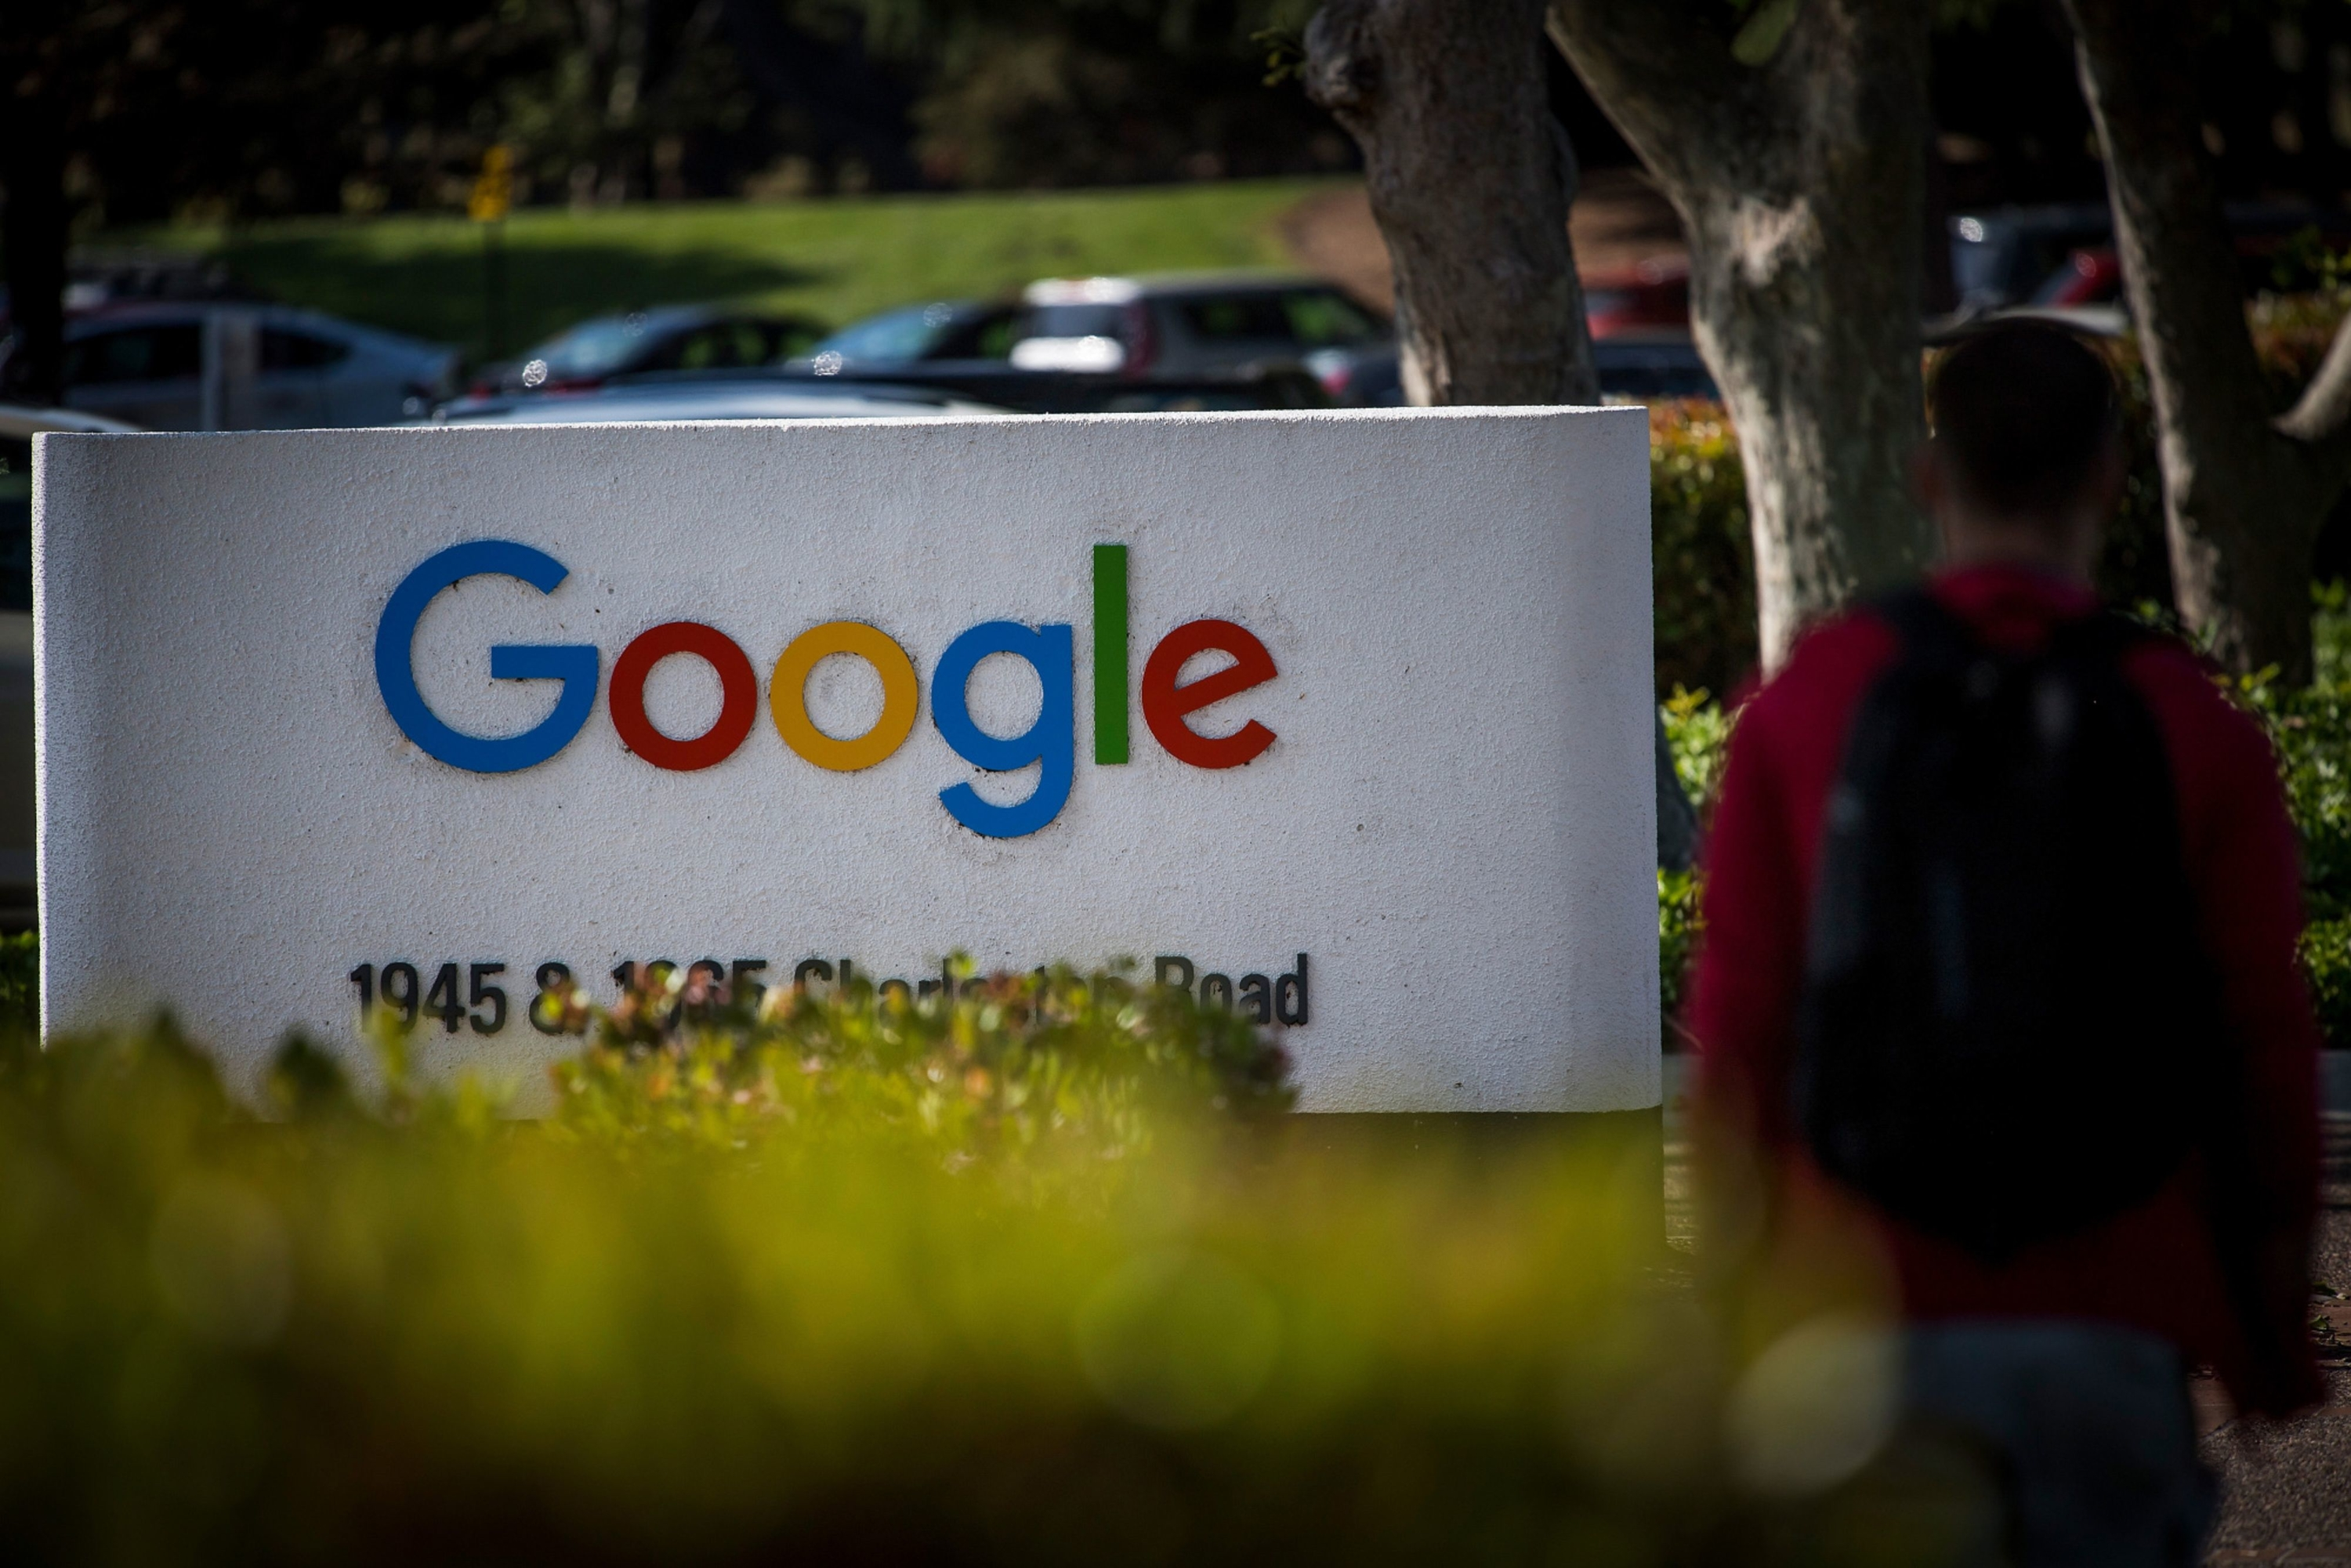 Google sued by U.S. for monopoly abuse in landmark antitrust case